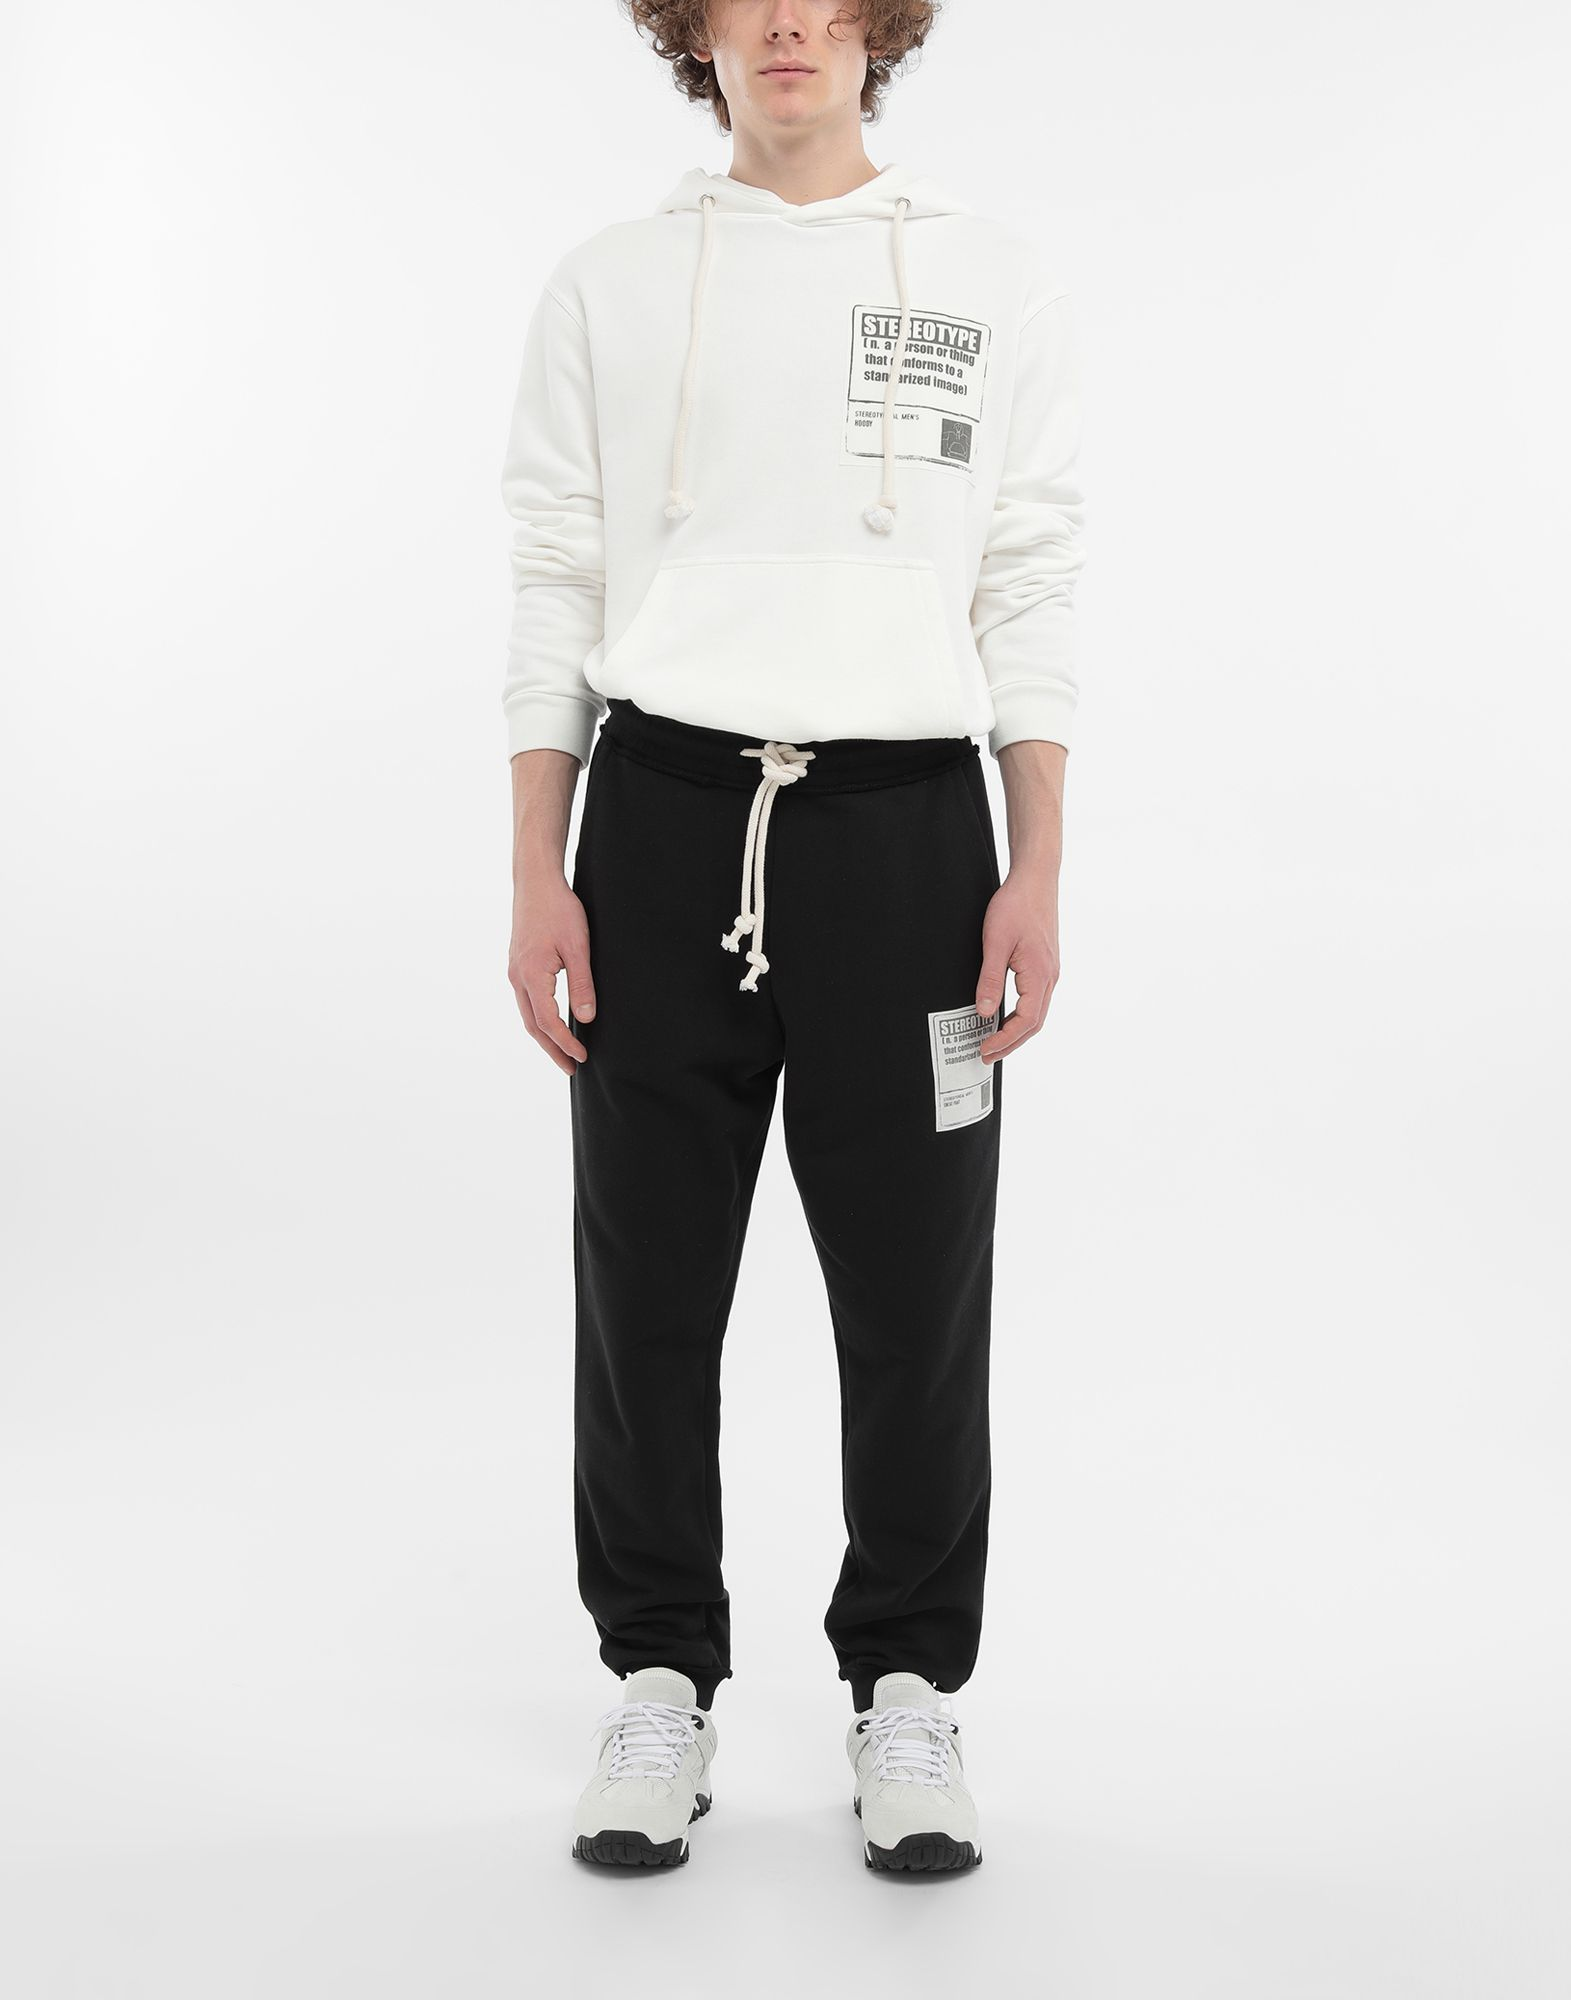 MAISON MARGIELA Cotton drawstring 'Stereotype' sweatpants Casual pants Man d